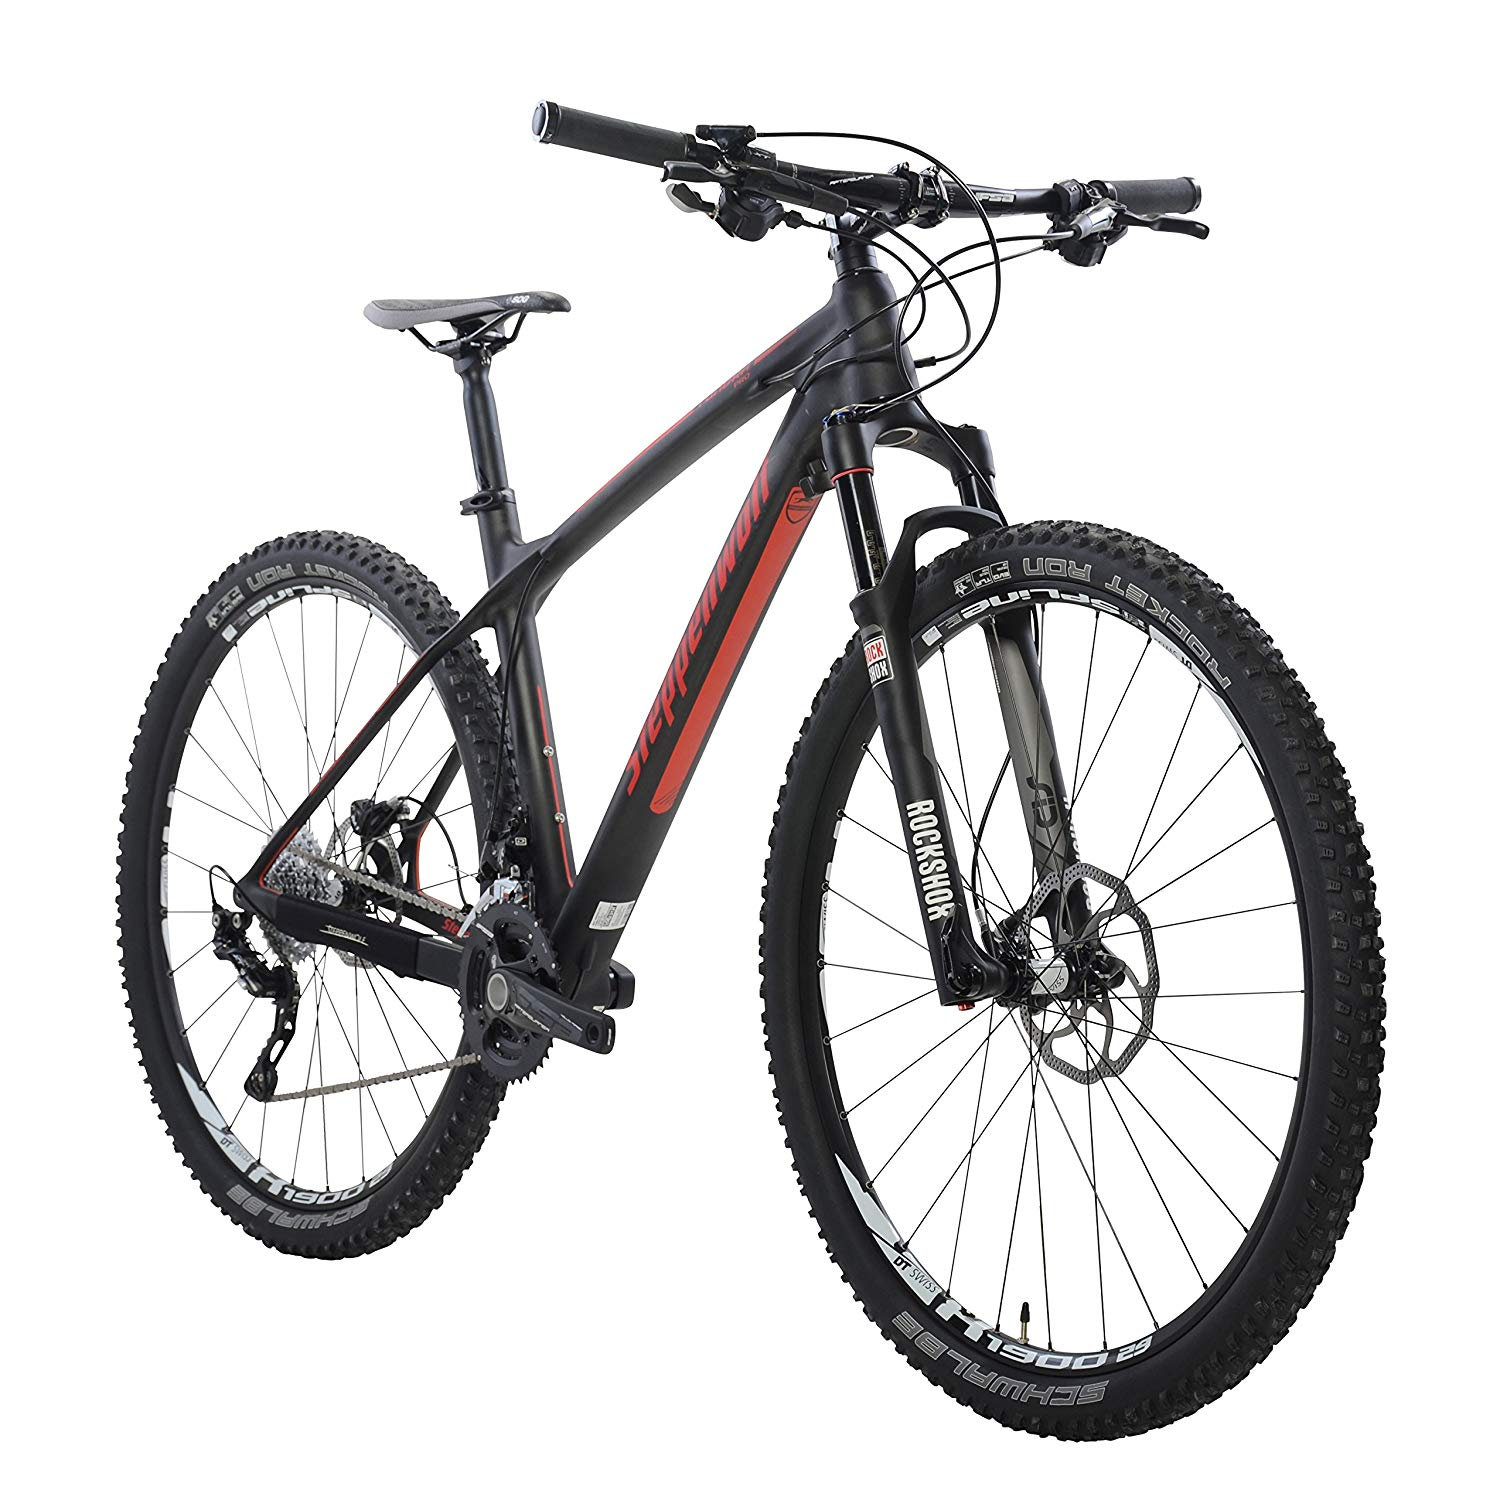 Weight of a Carbon Mountain Bike vs. Aluminum: Image of Steppenwolf 22.4 lb mountain bike